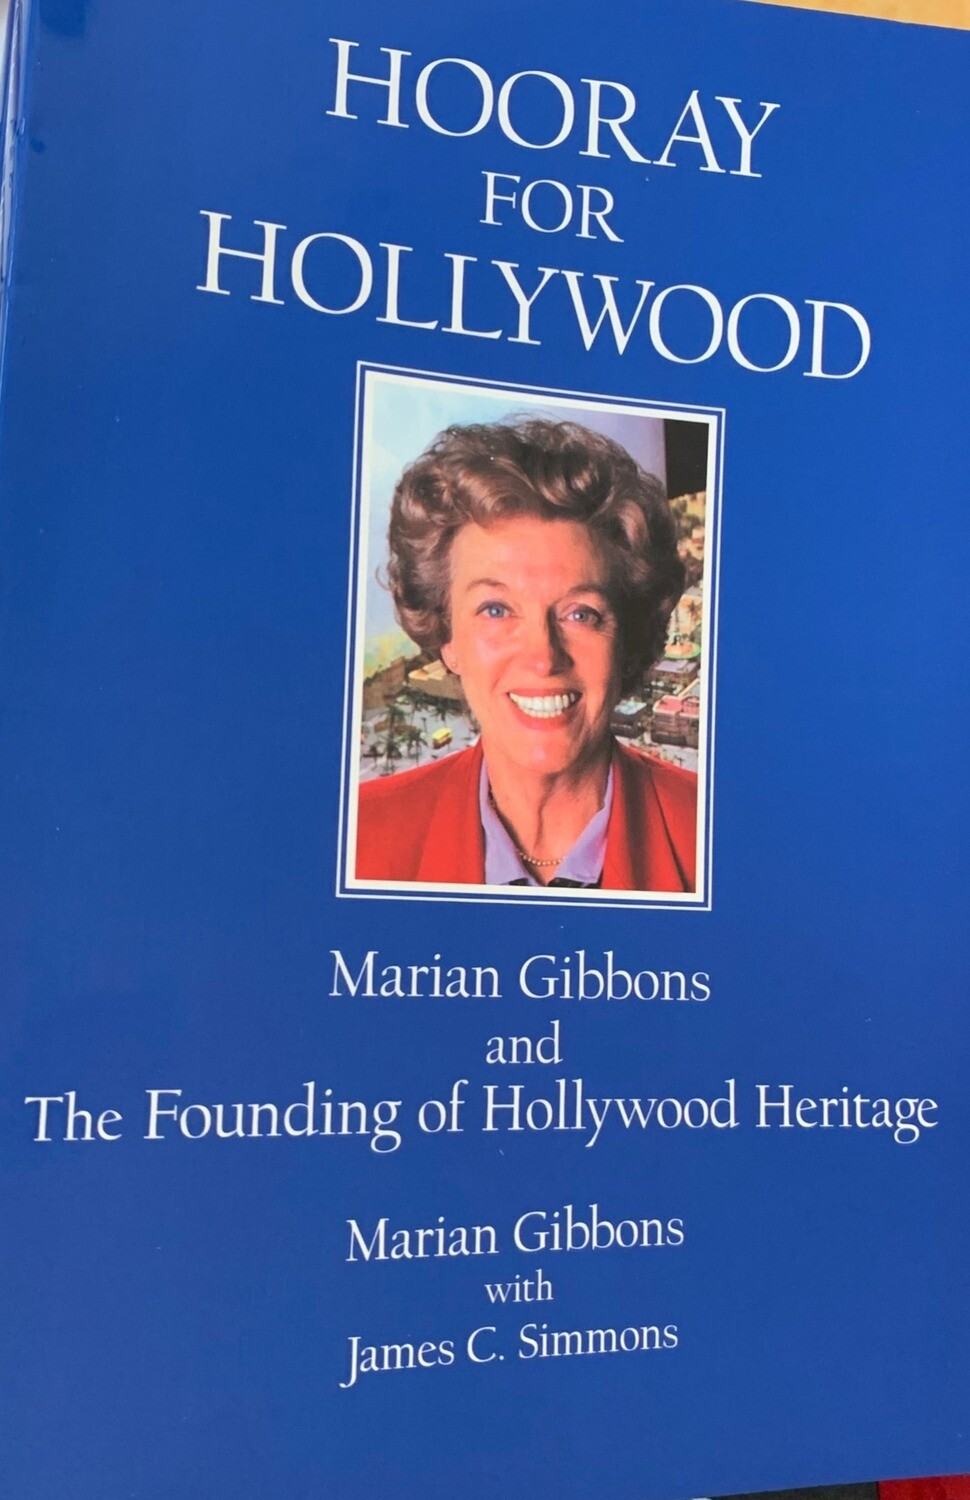 First Edition book - Hooray For Hollywood, Marian Gibbons and The Founding of Hollywood Heritage by Marian Gibbons (Paperback)